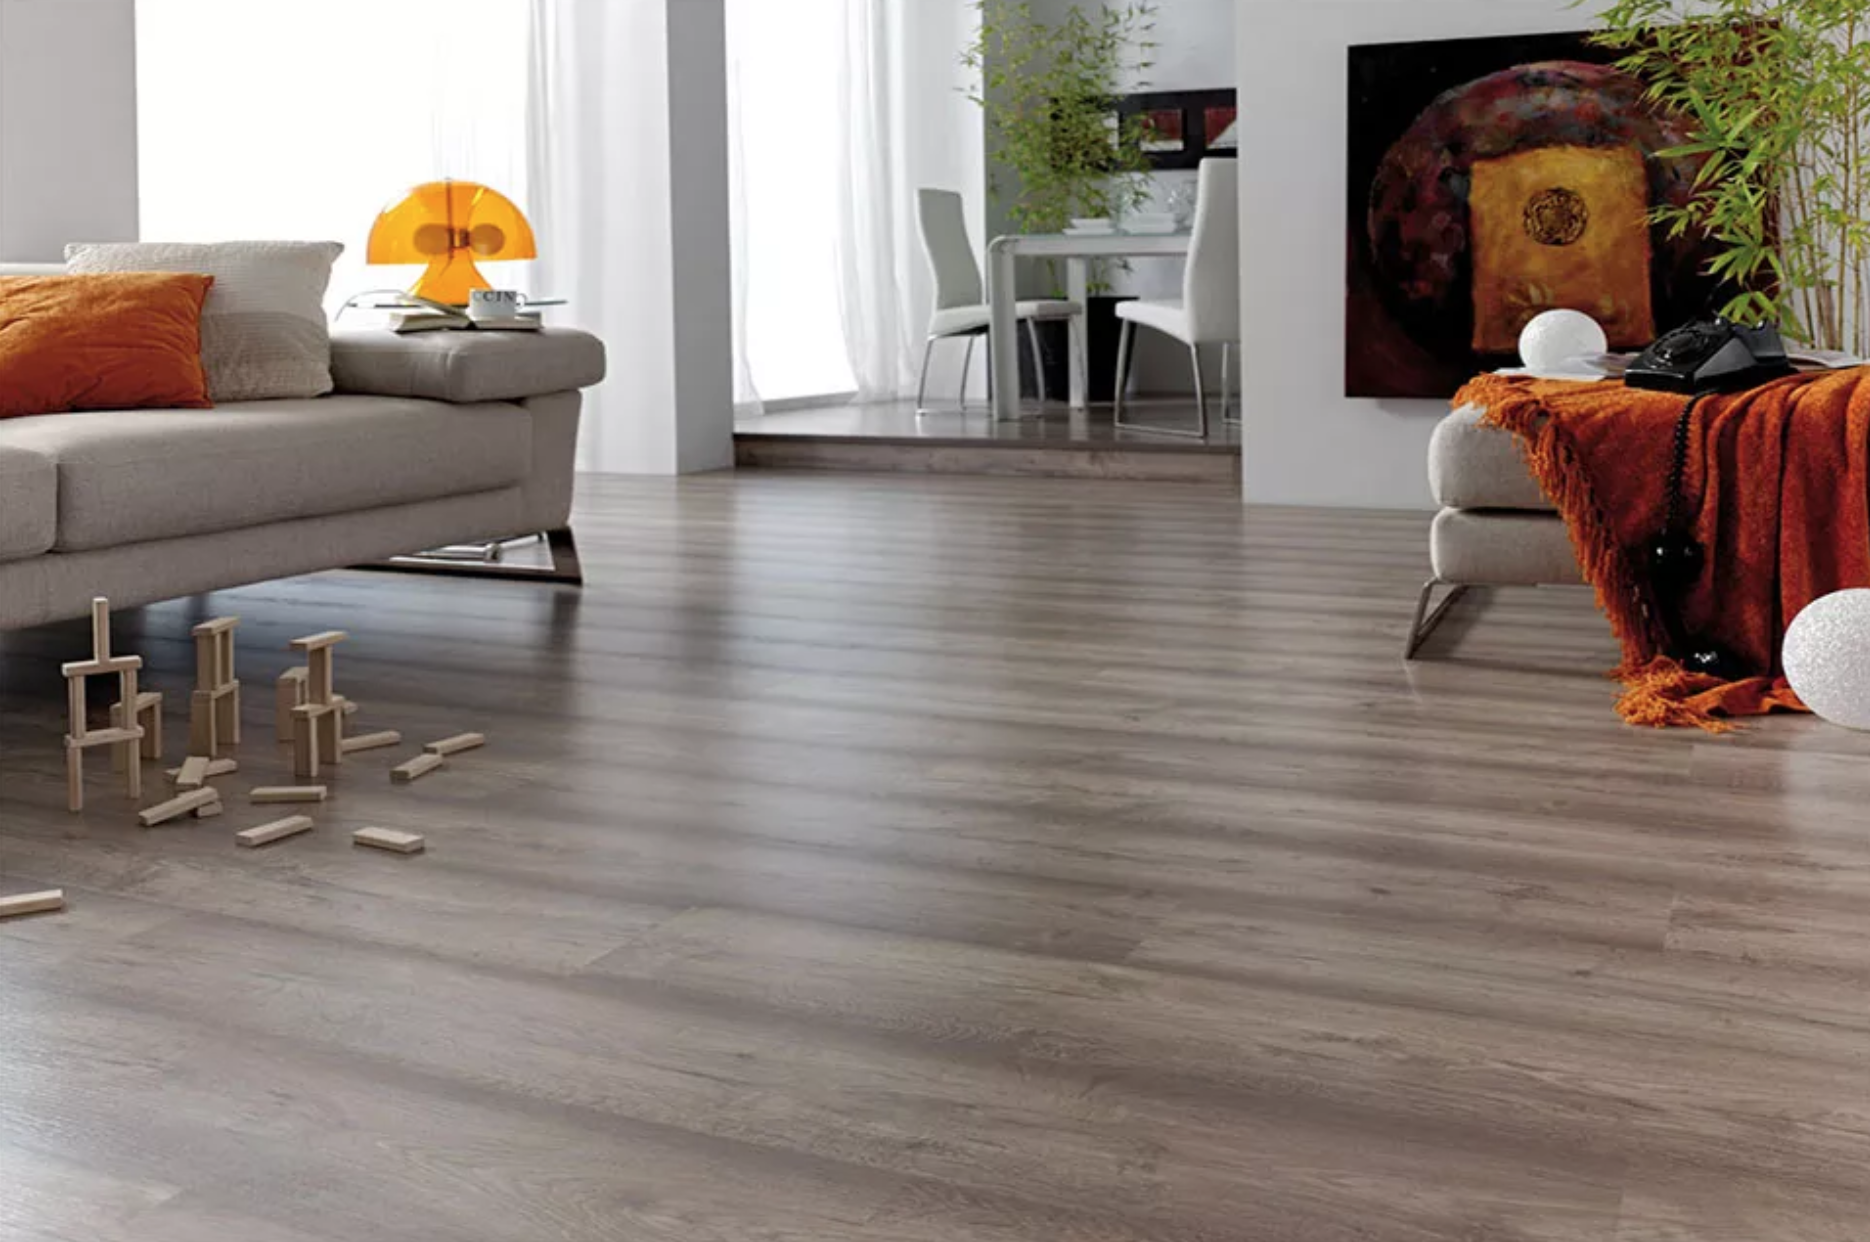 Ac Levels In Laminate Flooring Explained Wood And Beyond Blog